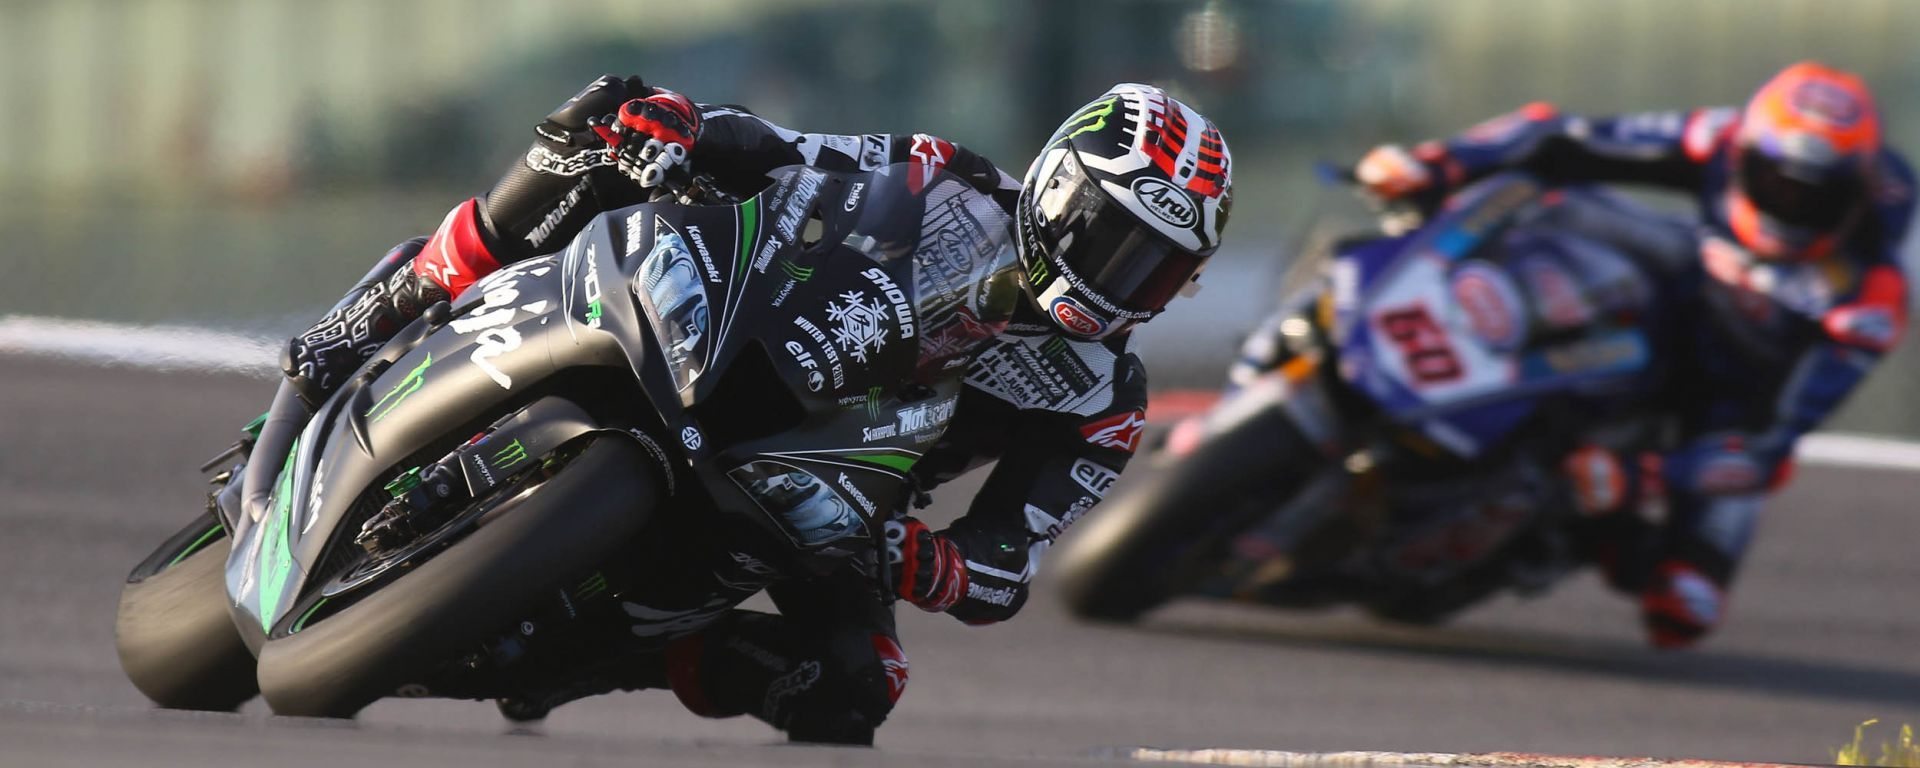 WSBK, Johnny Rea domina la due giorni di test a Portimao